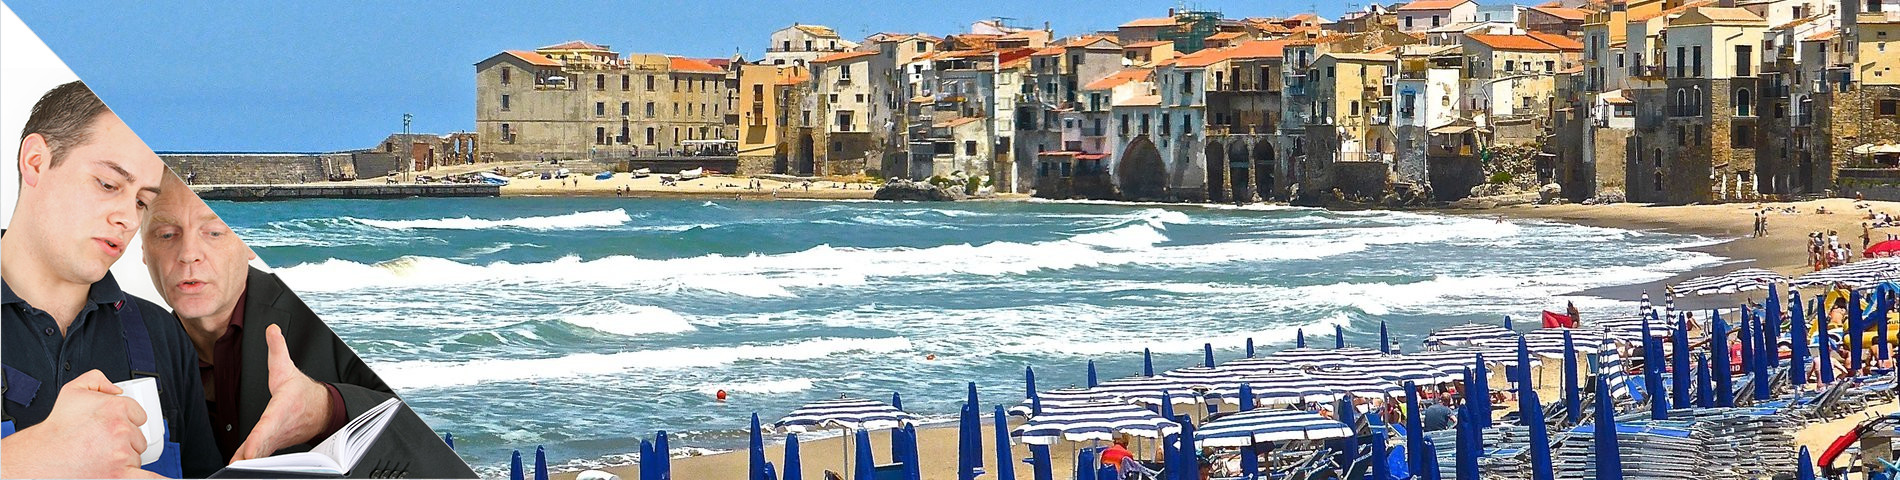 Cefalu - One-to-One